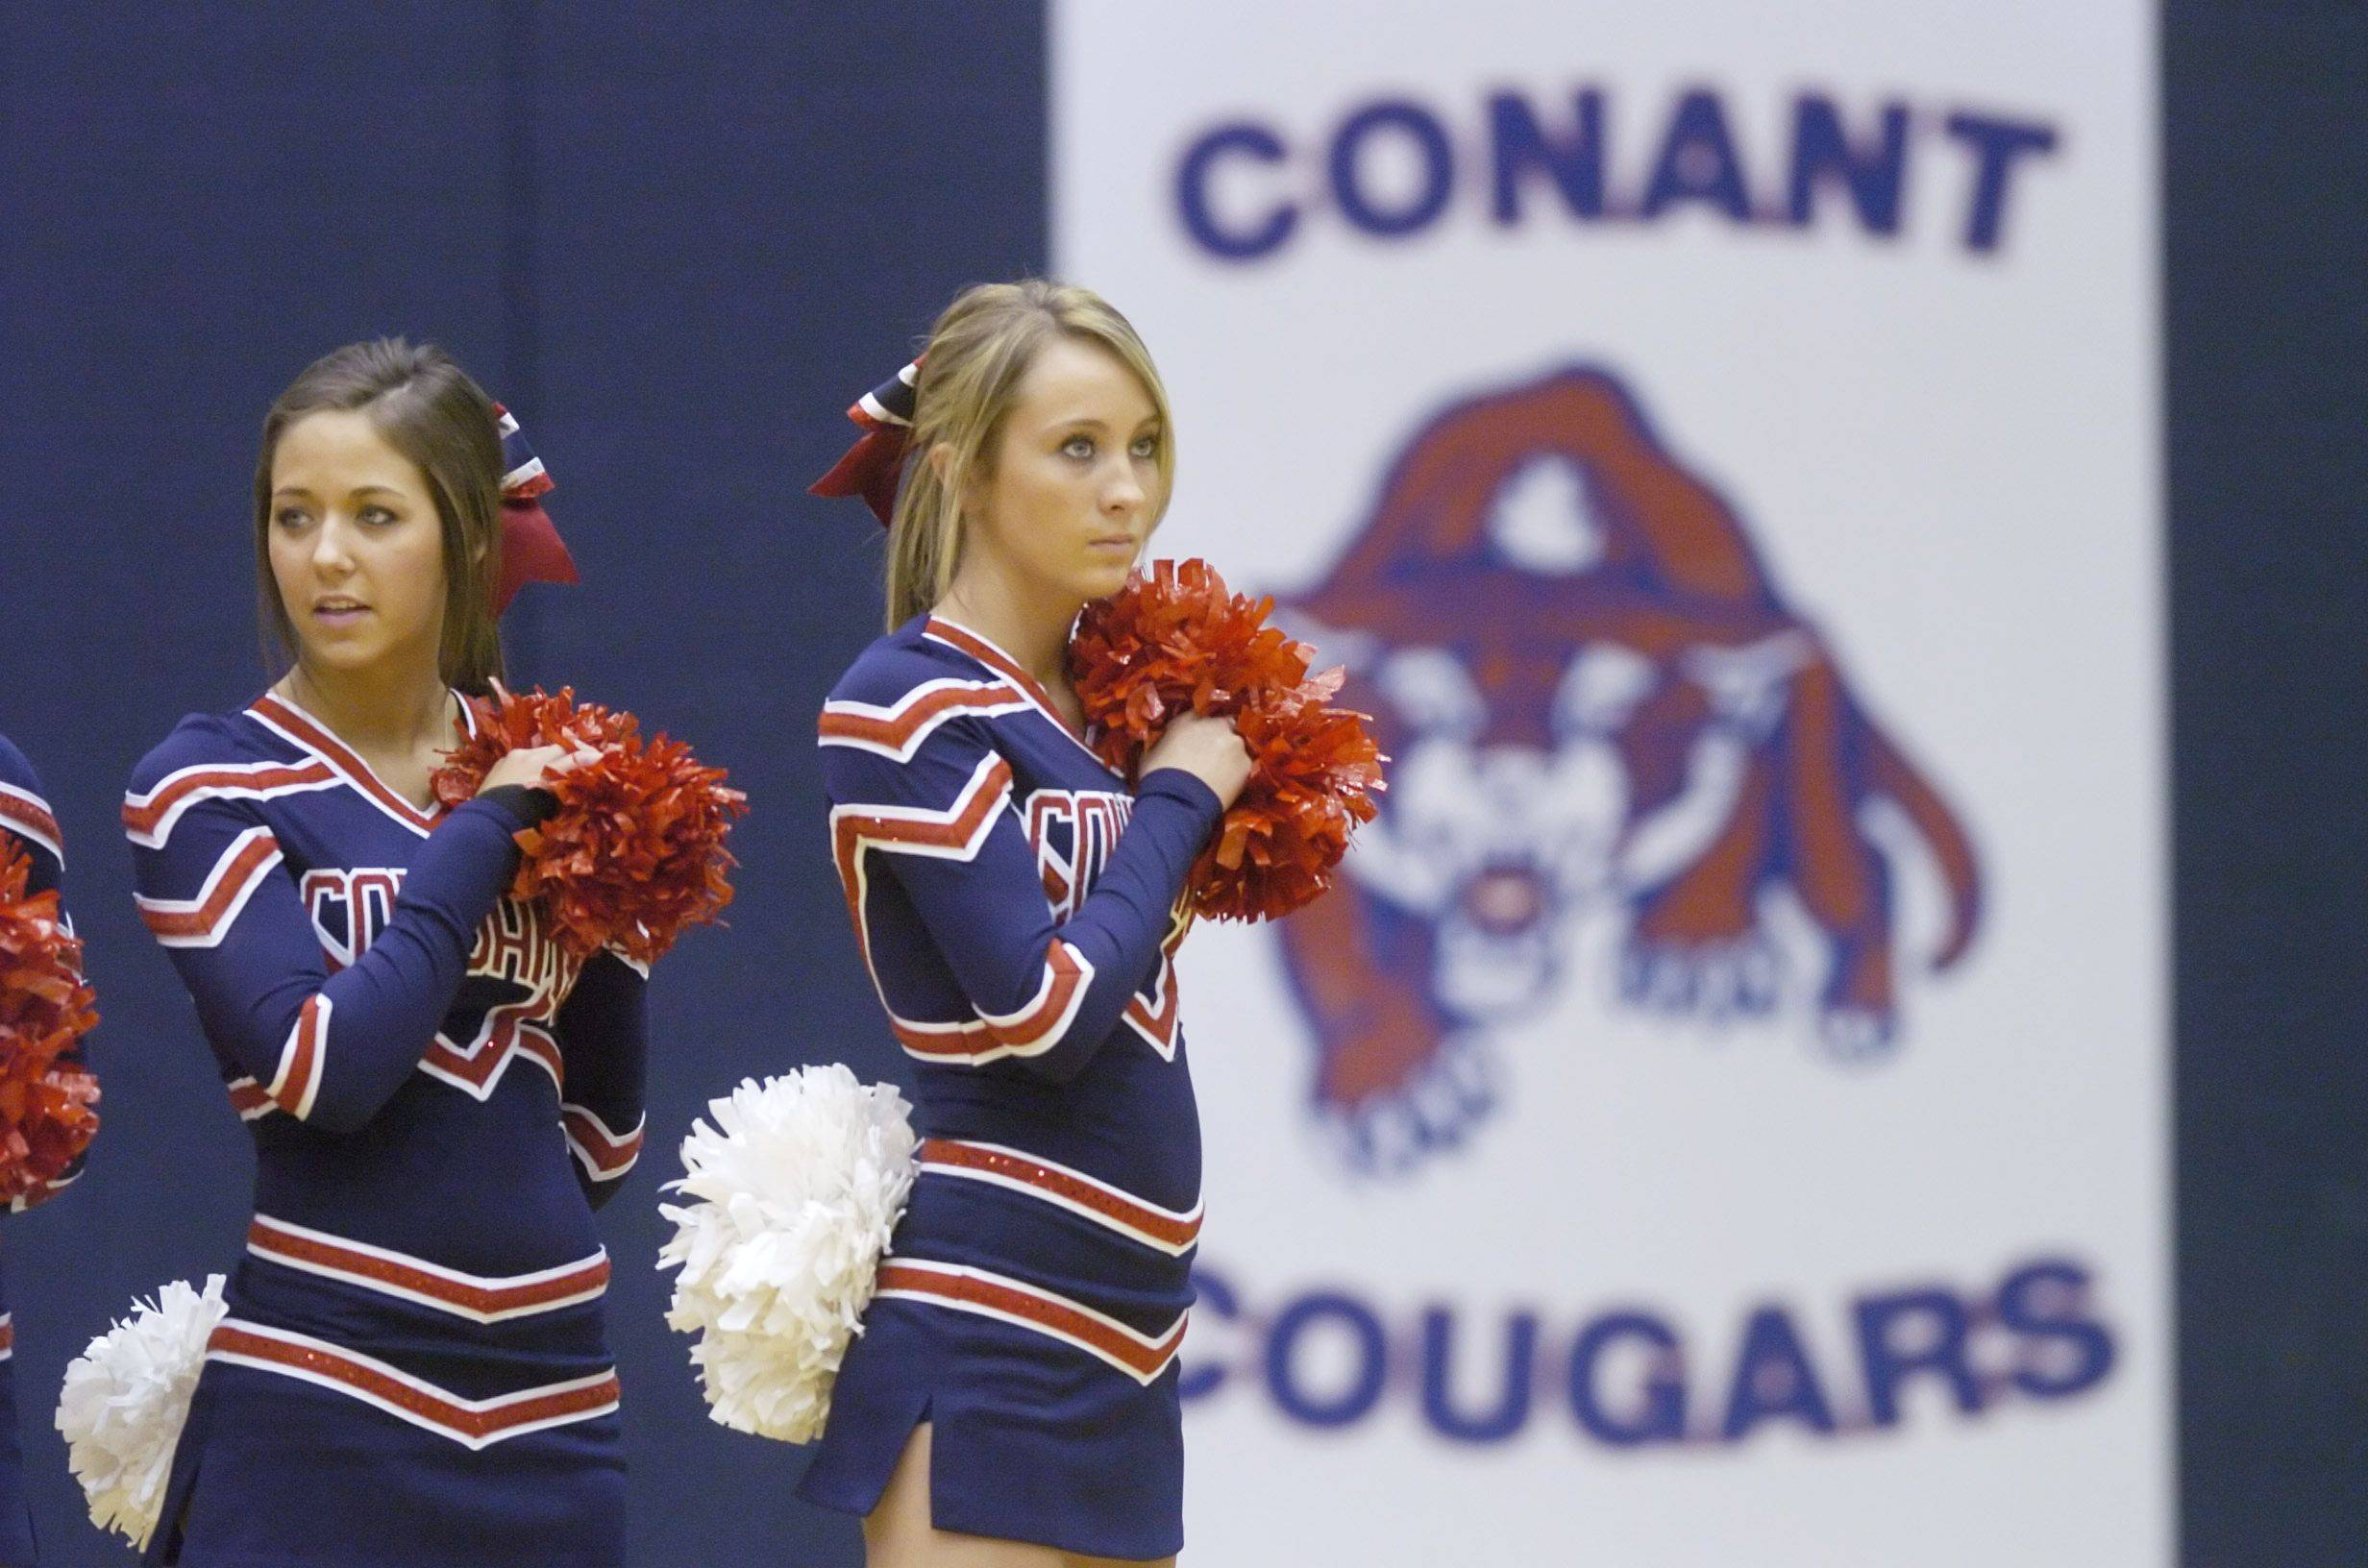 Images from the Conant vs. St. Patrick boys regional basketball game in Hoffman Estates on Wednesday, March 2nd.